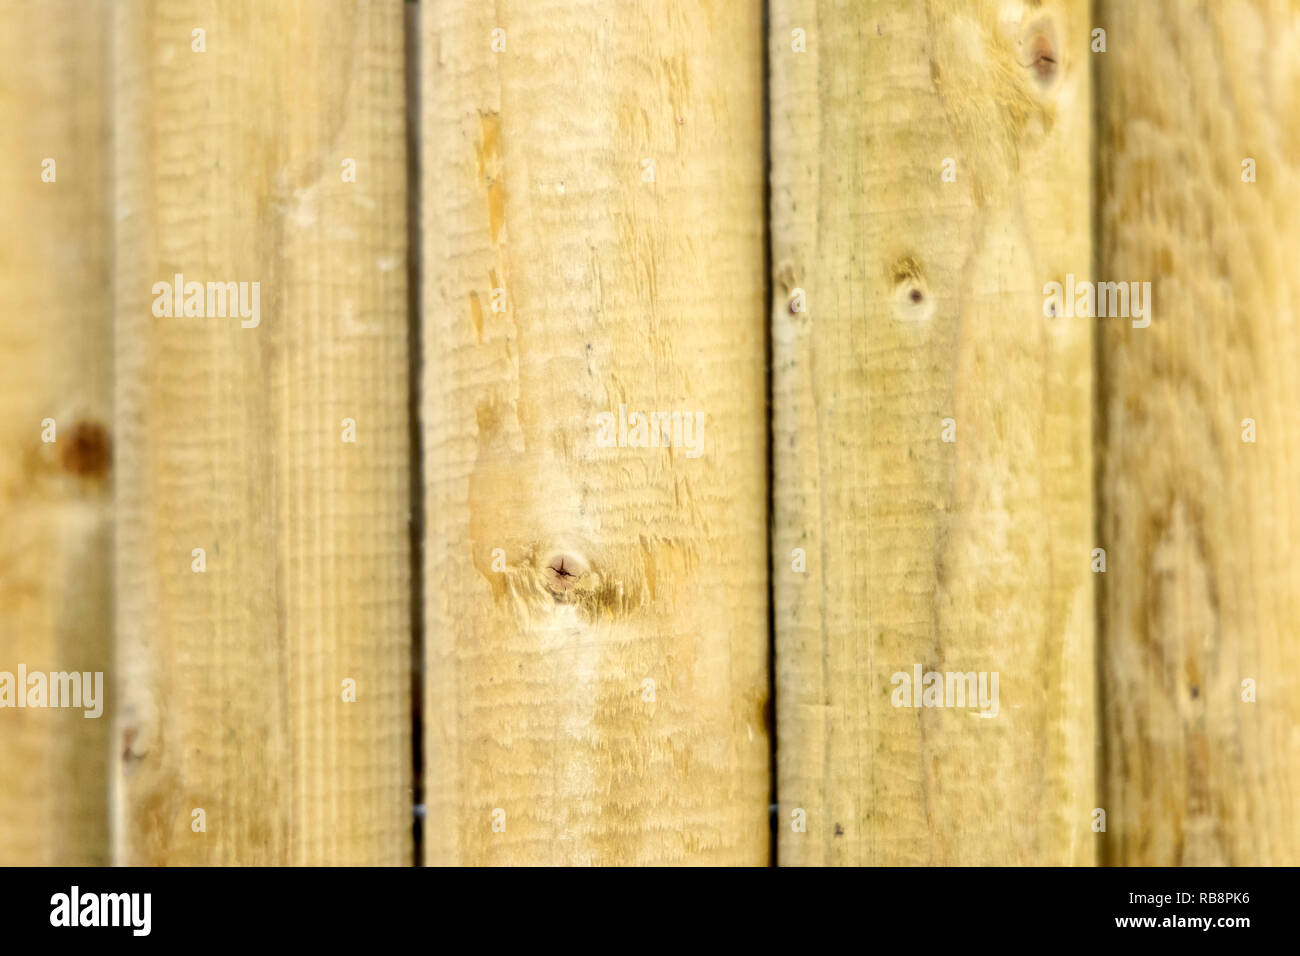 building material - fence post pole wood - Stock Image